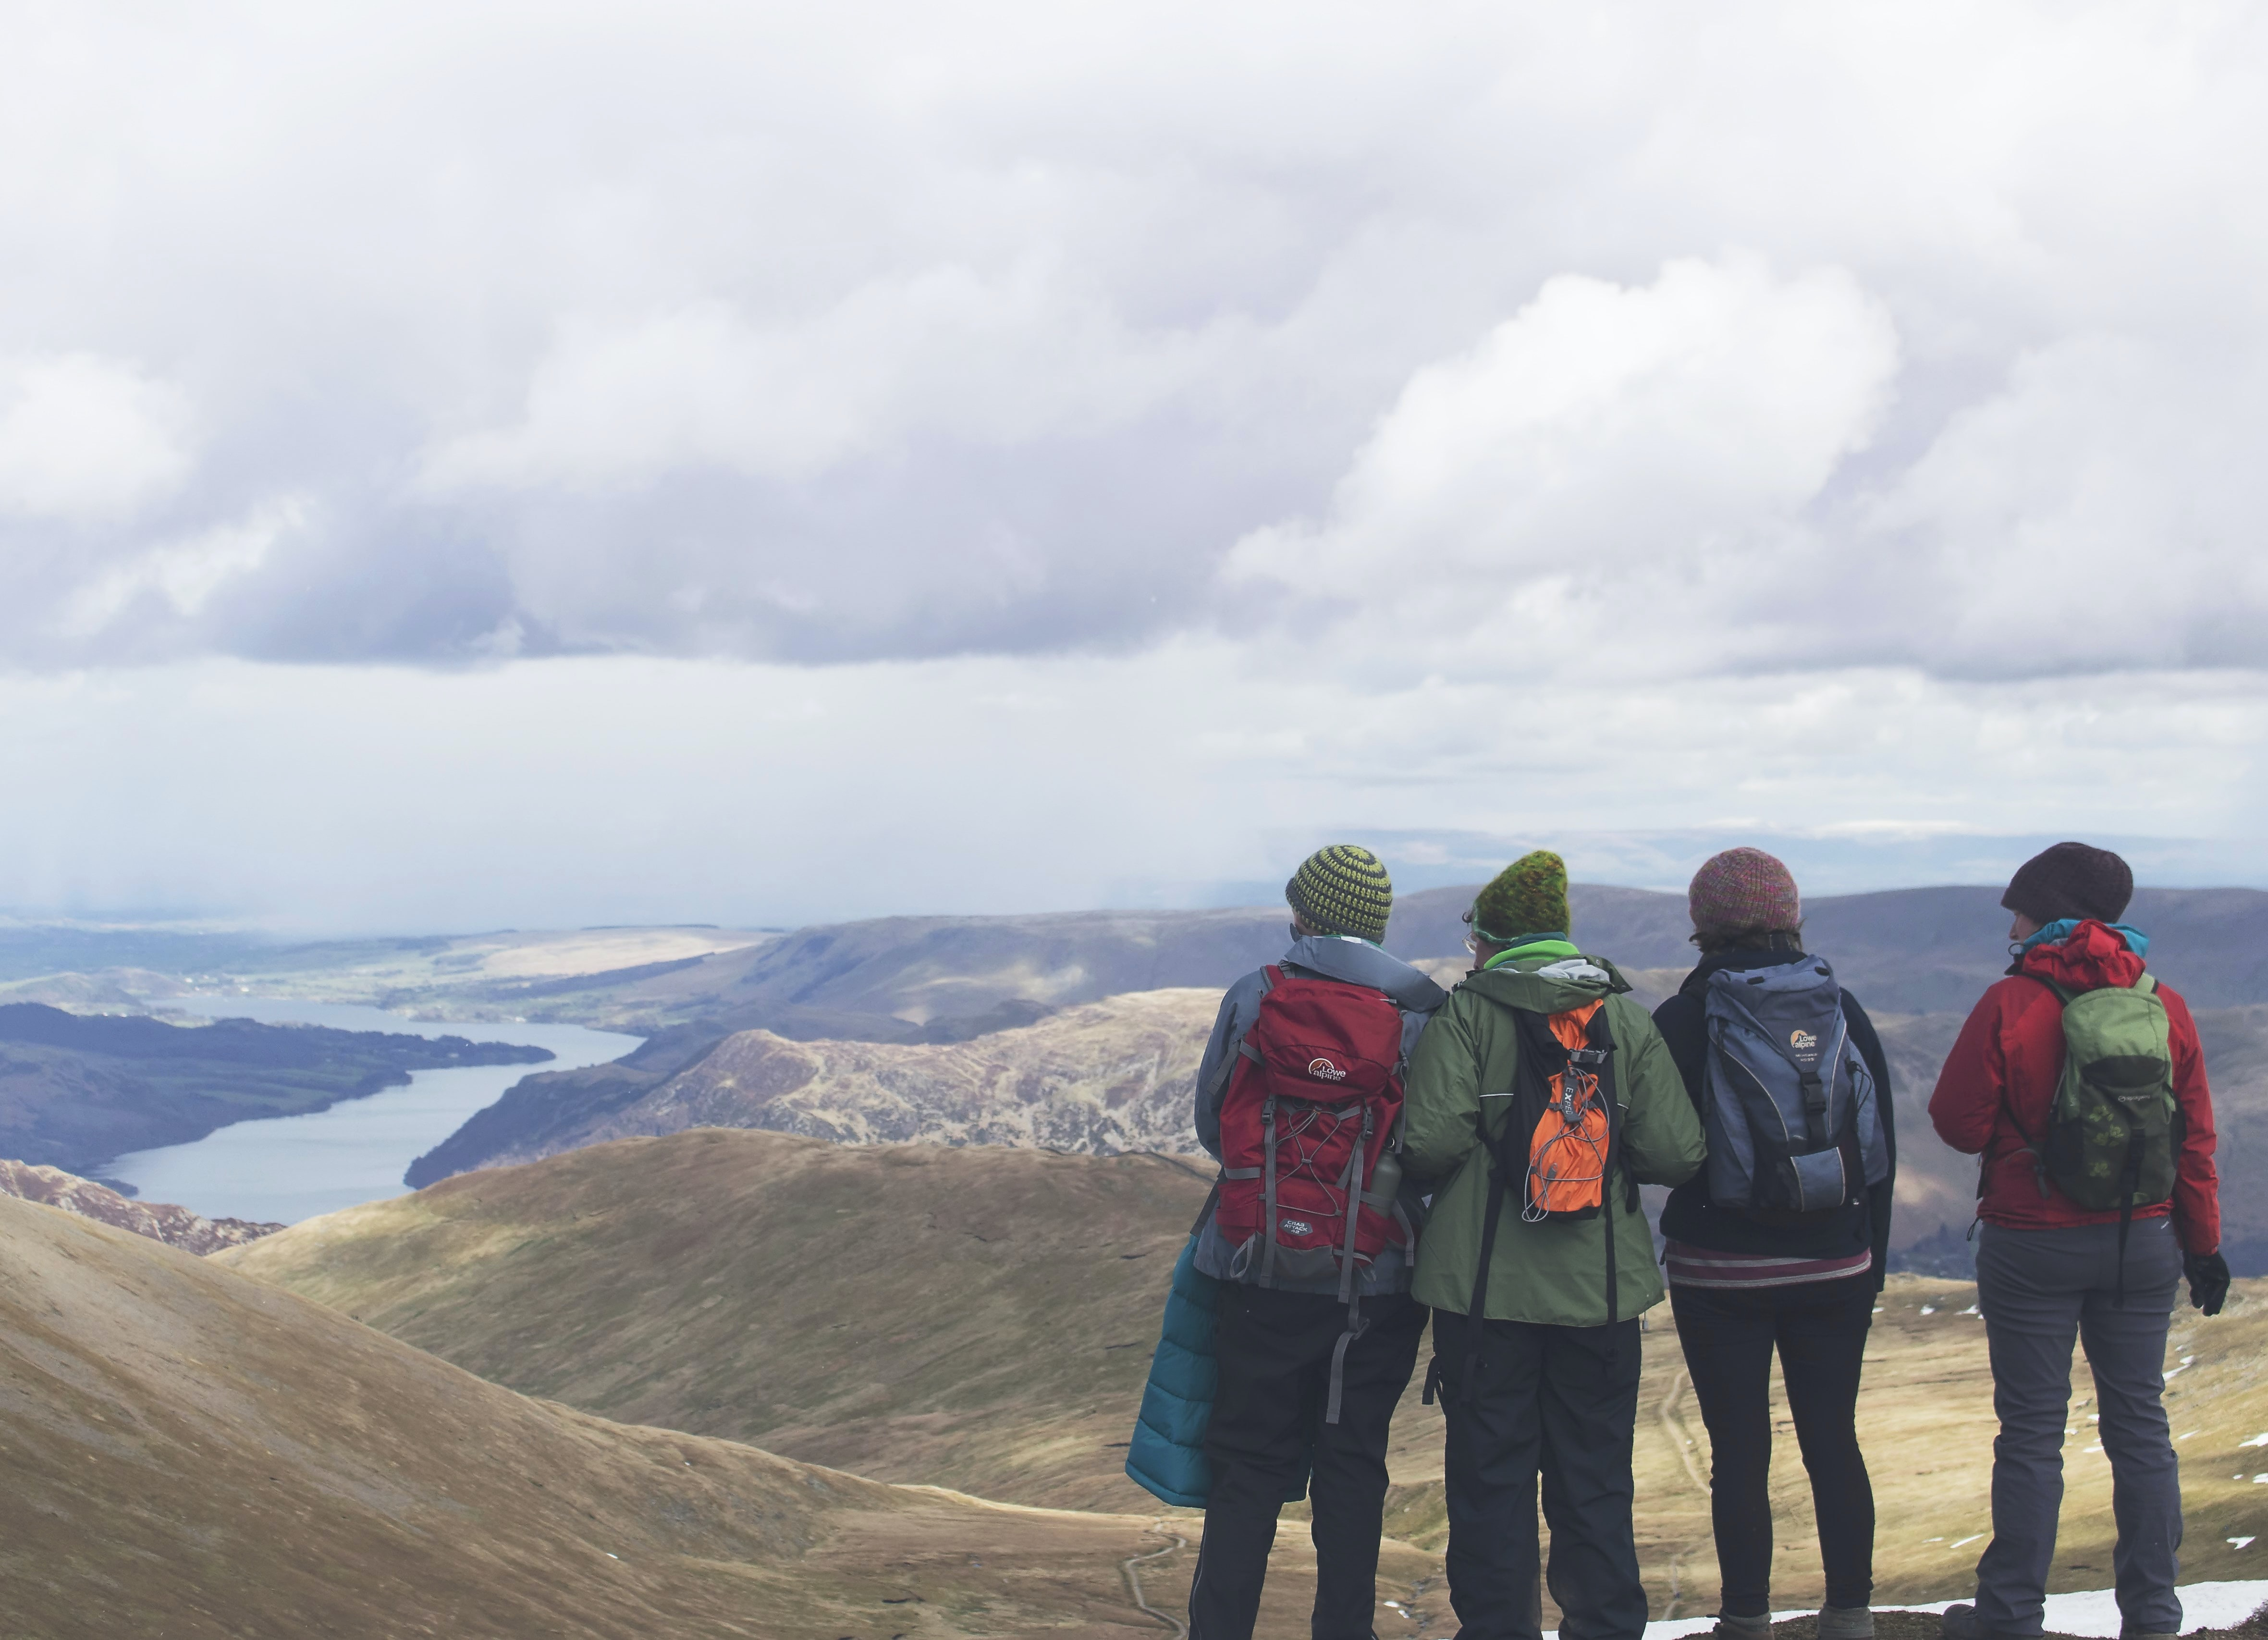 Group of hikers looking at the view from a high point on Helvellyn mountain